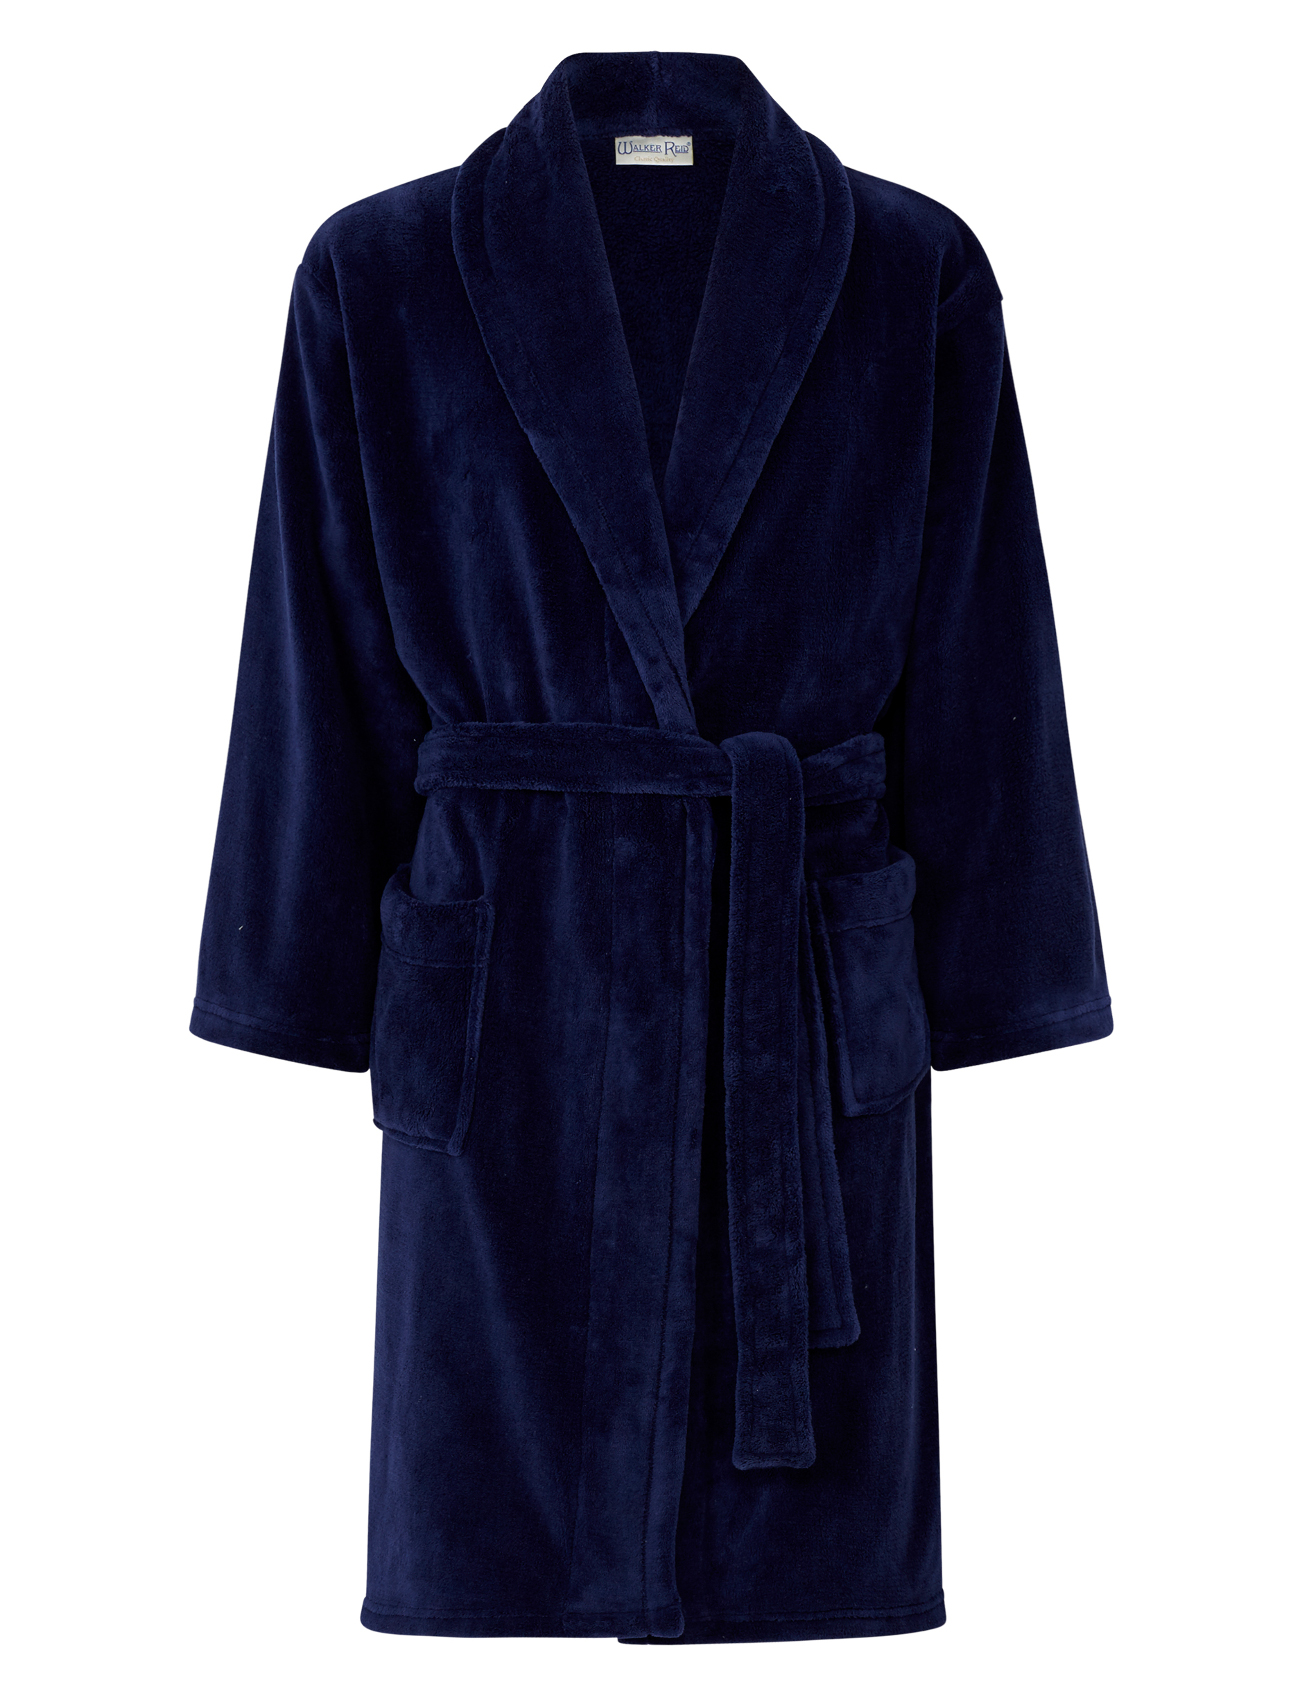 discount for sale shop for newest top-rated newest Details about Dressing Gown Mens Soft Fleecy Plain Bathrobe Luxury Walker  Reid Nightwear Robe